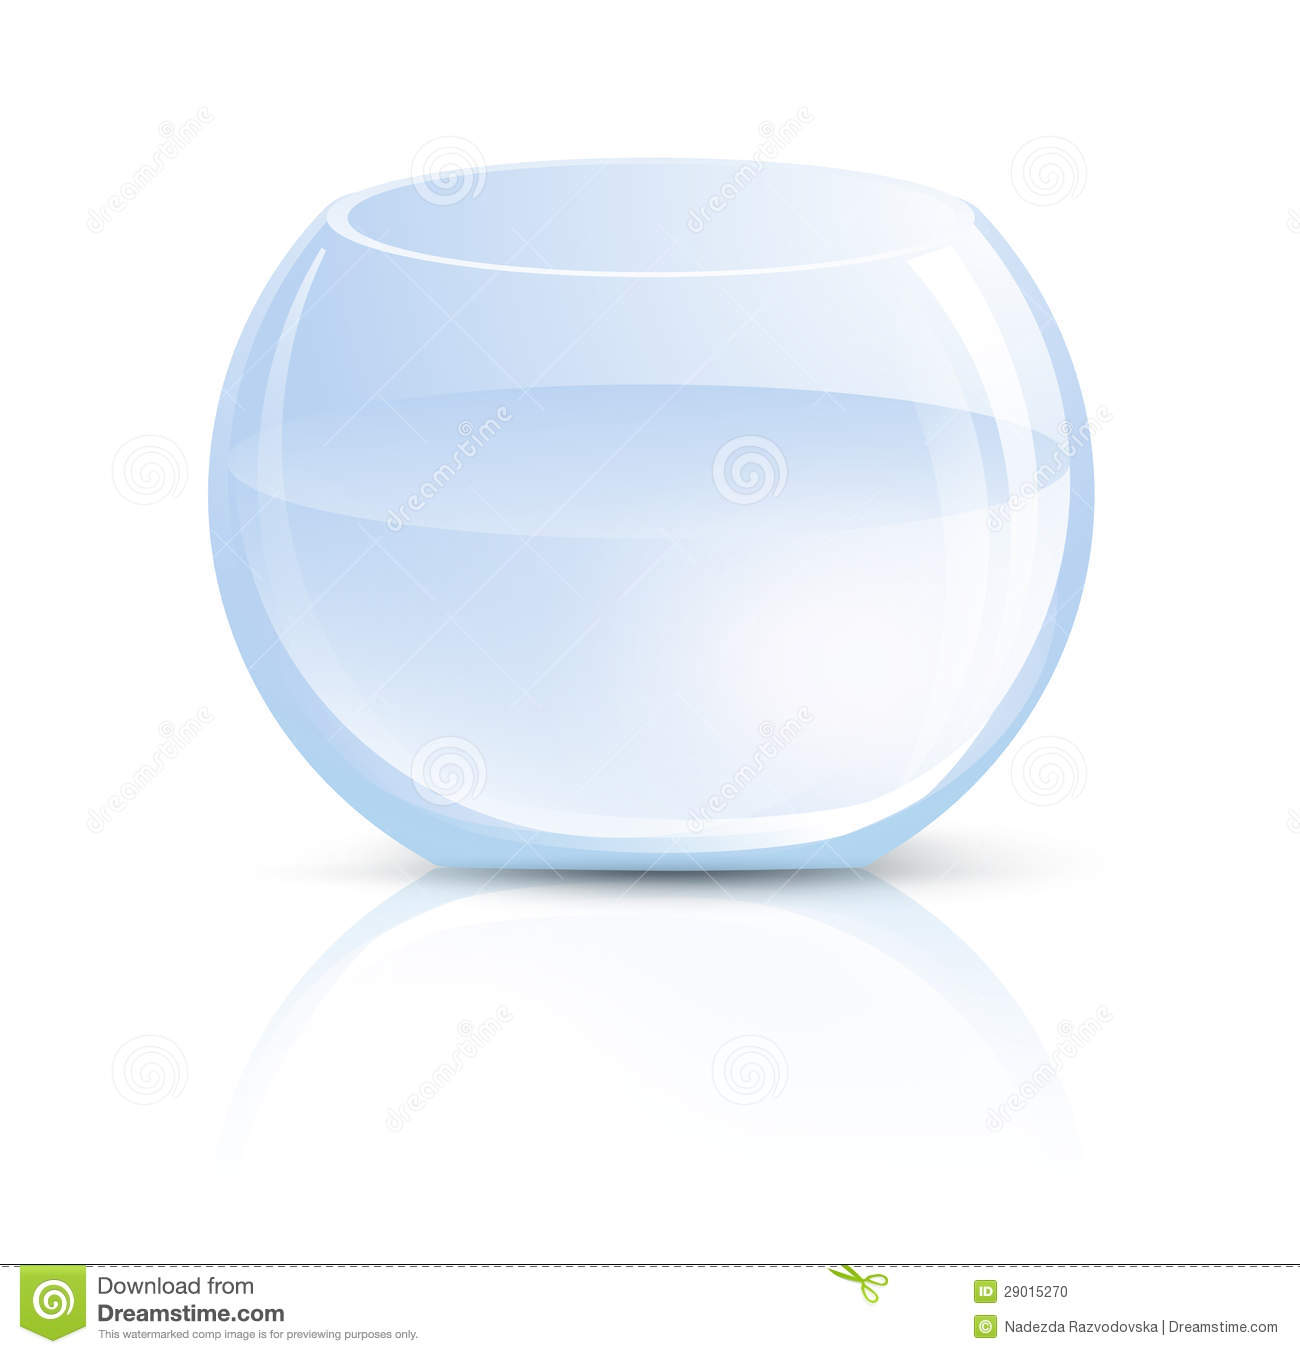 Vase en verre ou aquarium rond illustration de vecteur for Grand aquarium rond